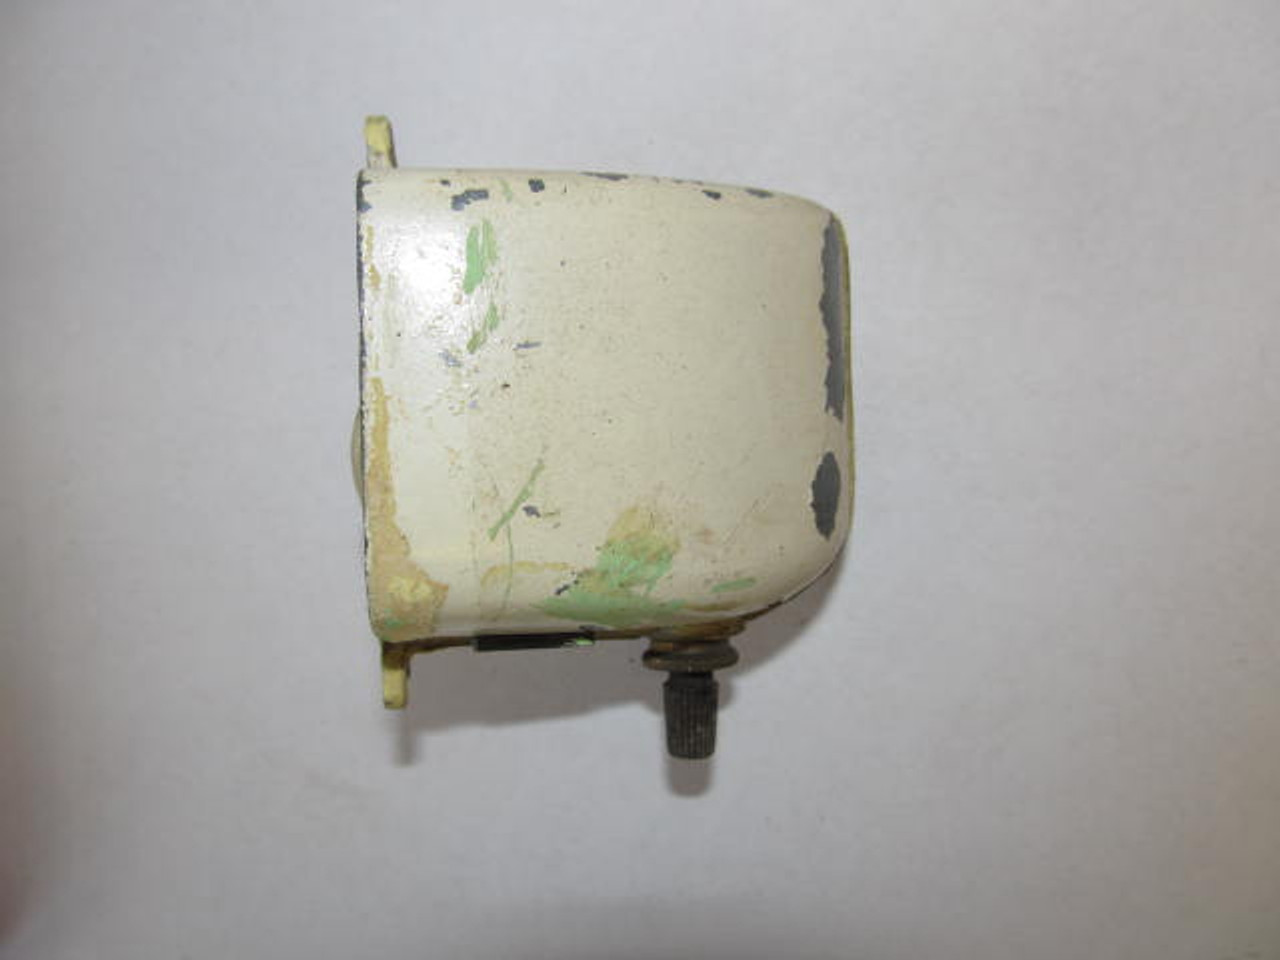 Aluminum Wall Sconce with Outlet (LT358)